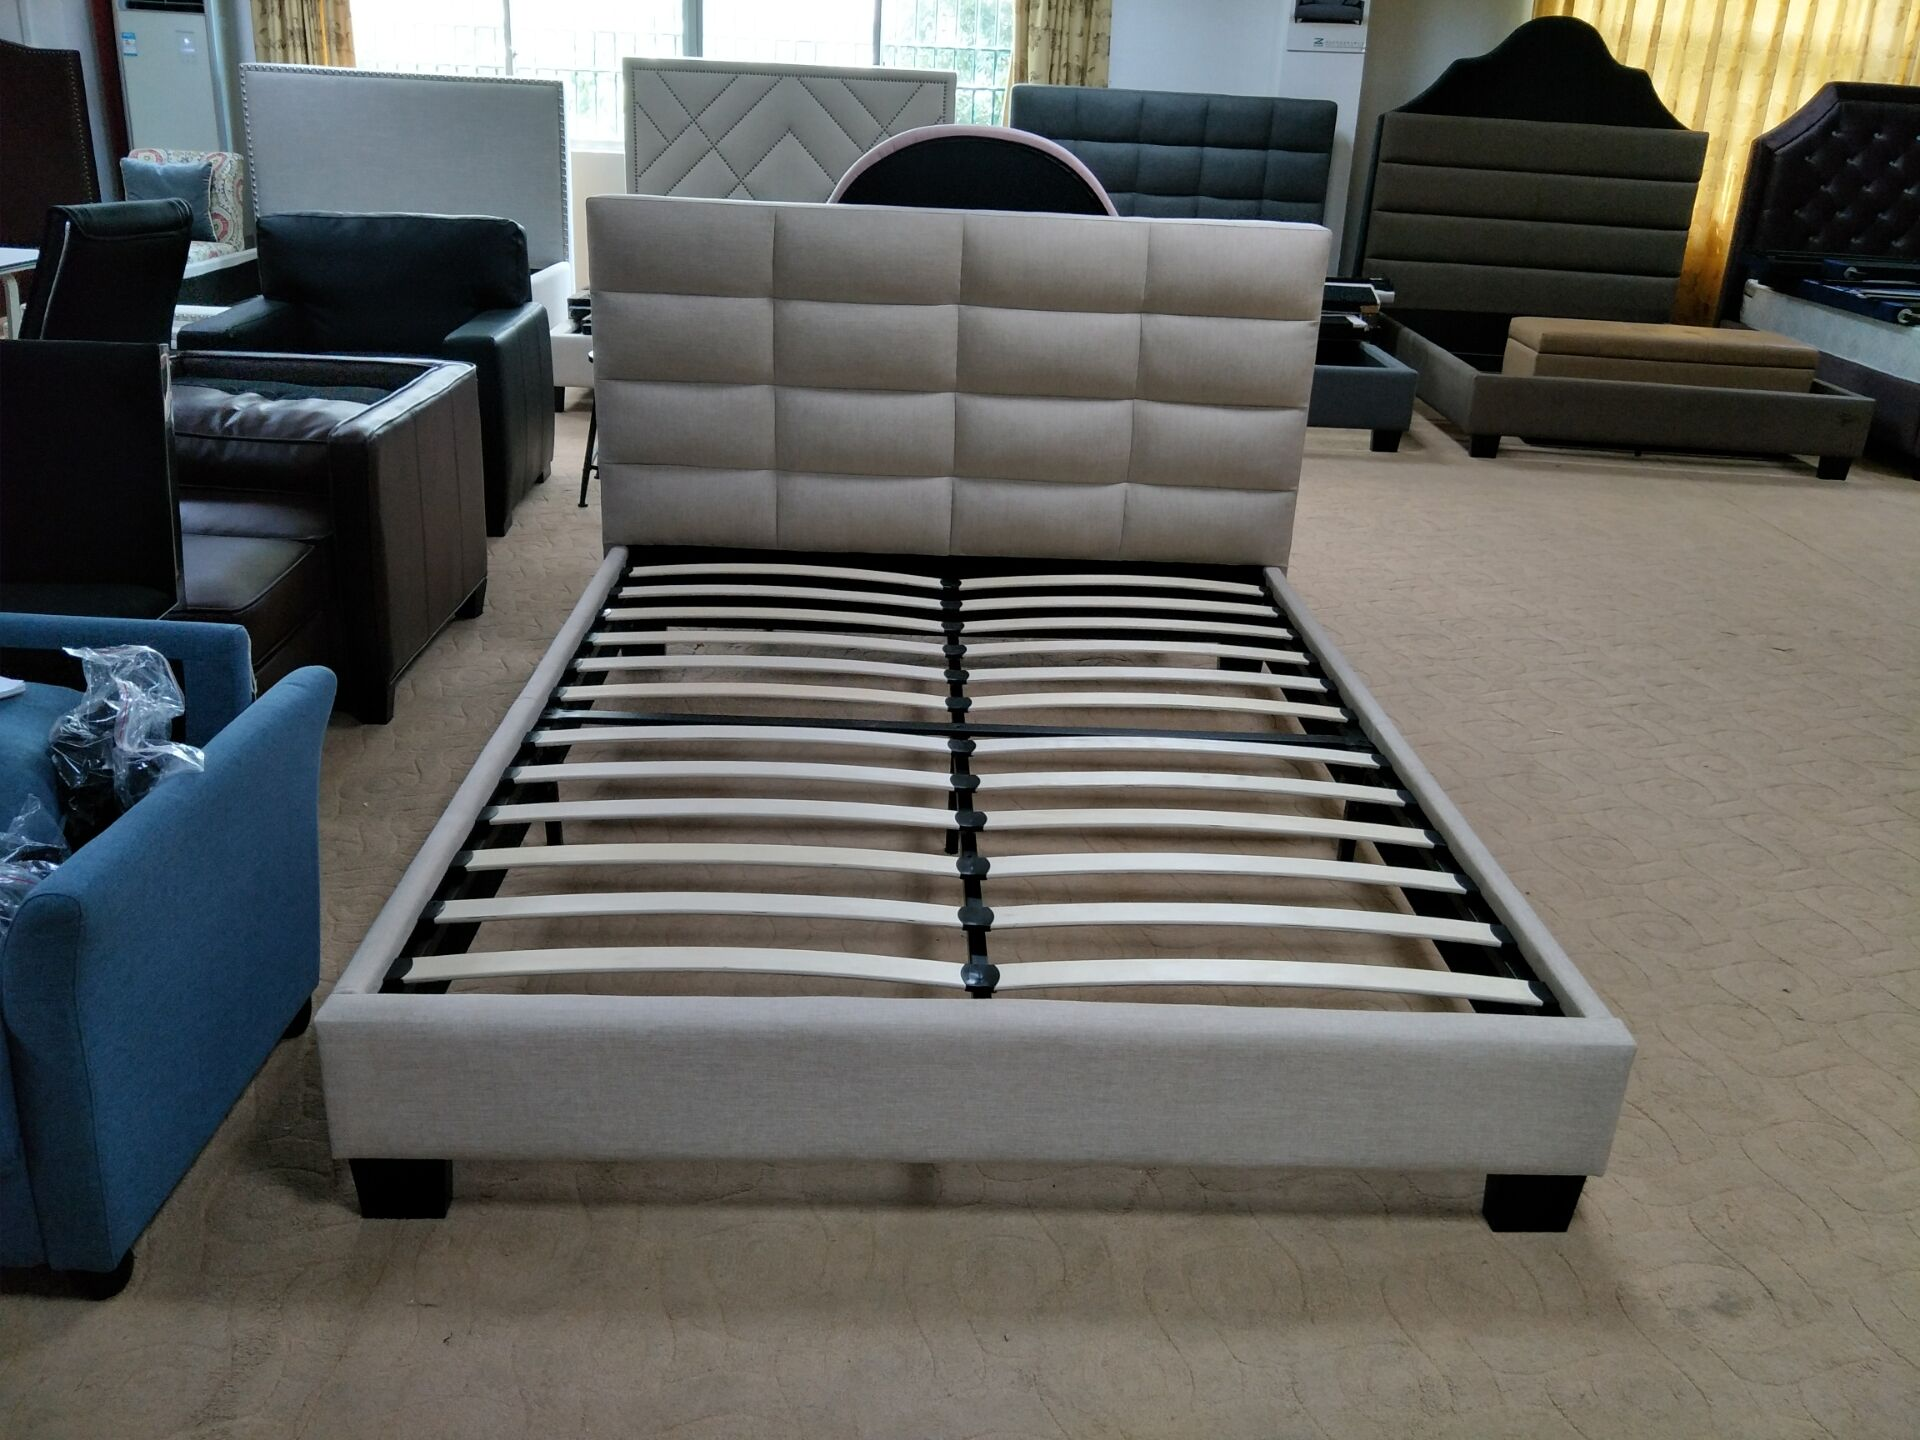 Wooden Sex Bed Double Strong Furniture Latest Designs Buy Design Wood